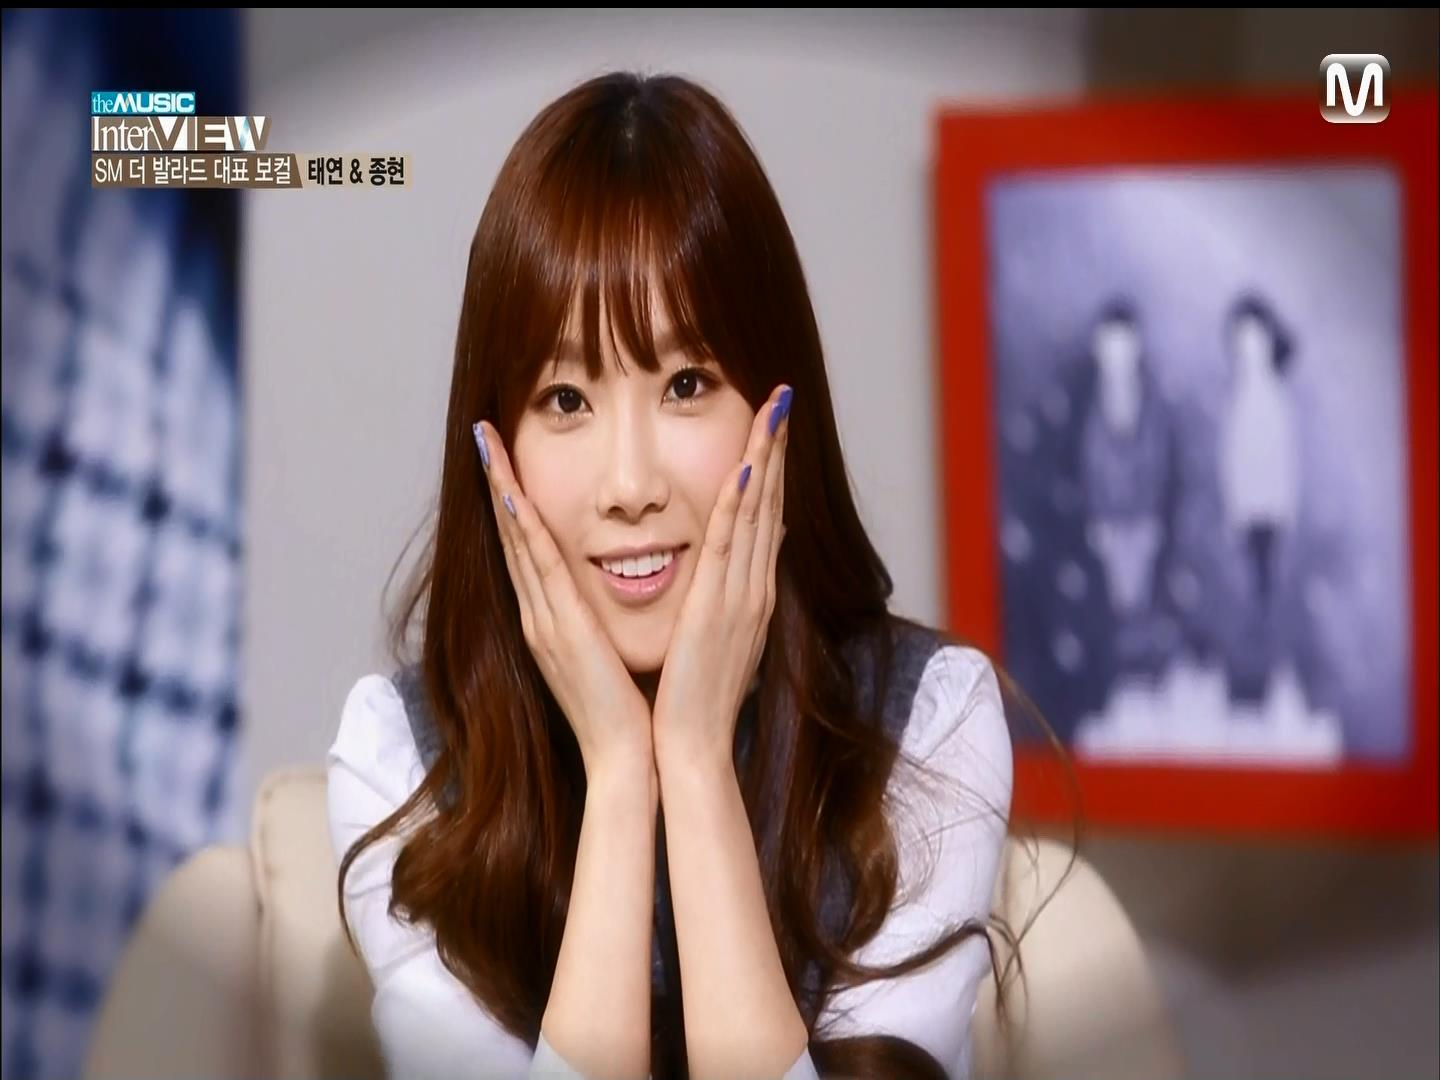 taeyeonthemusic